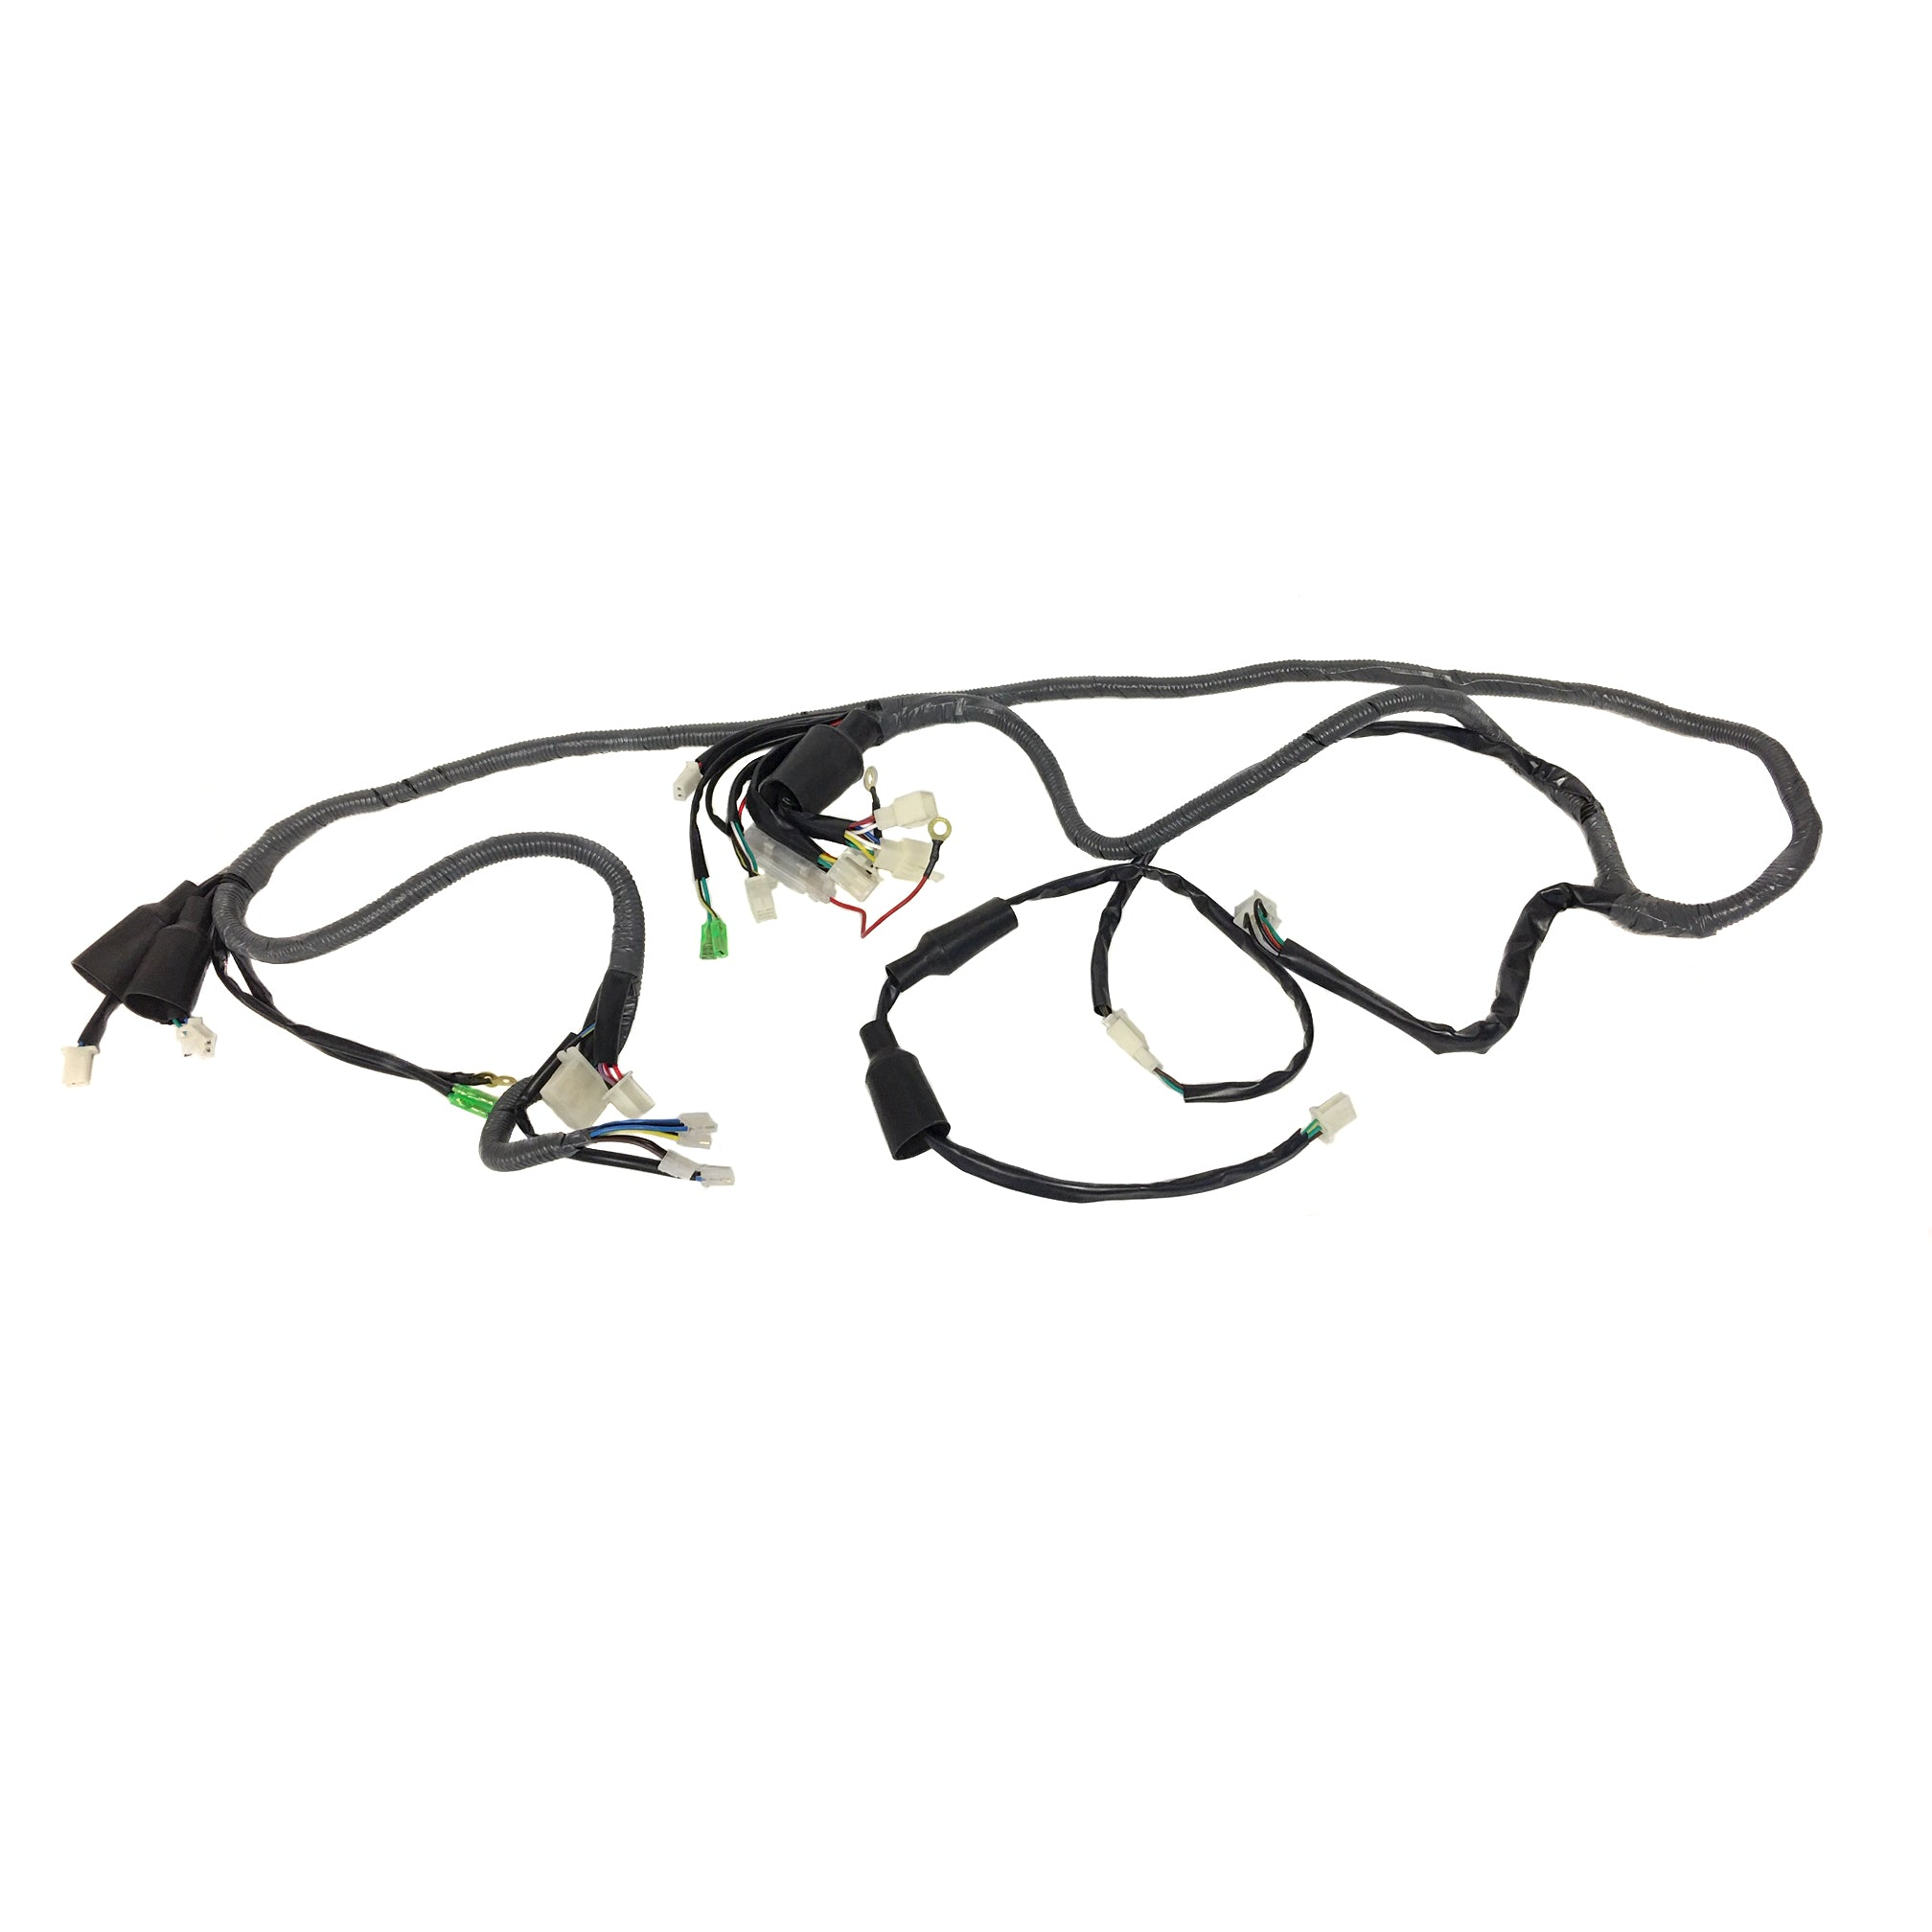 Wiring Harness for Tao Tao 110cc GK110 Go-Kart